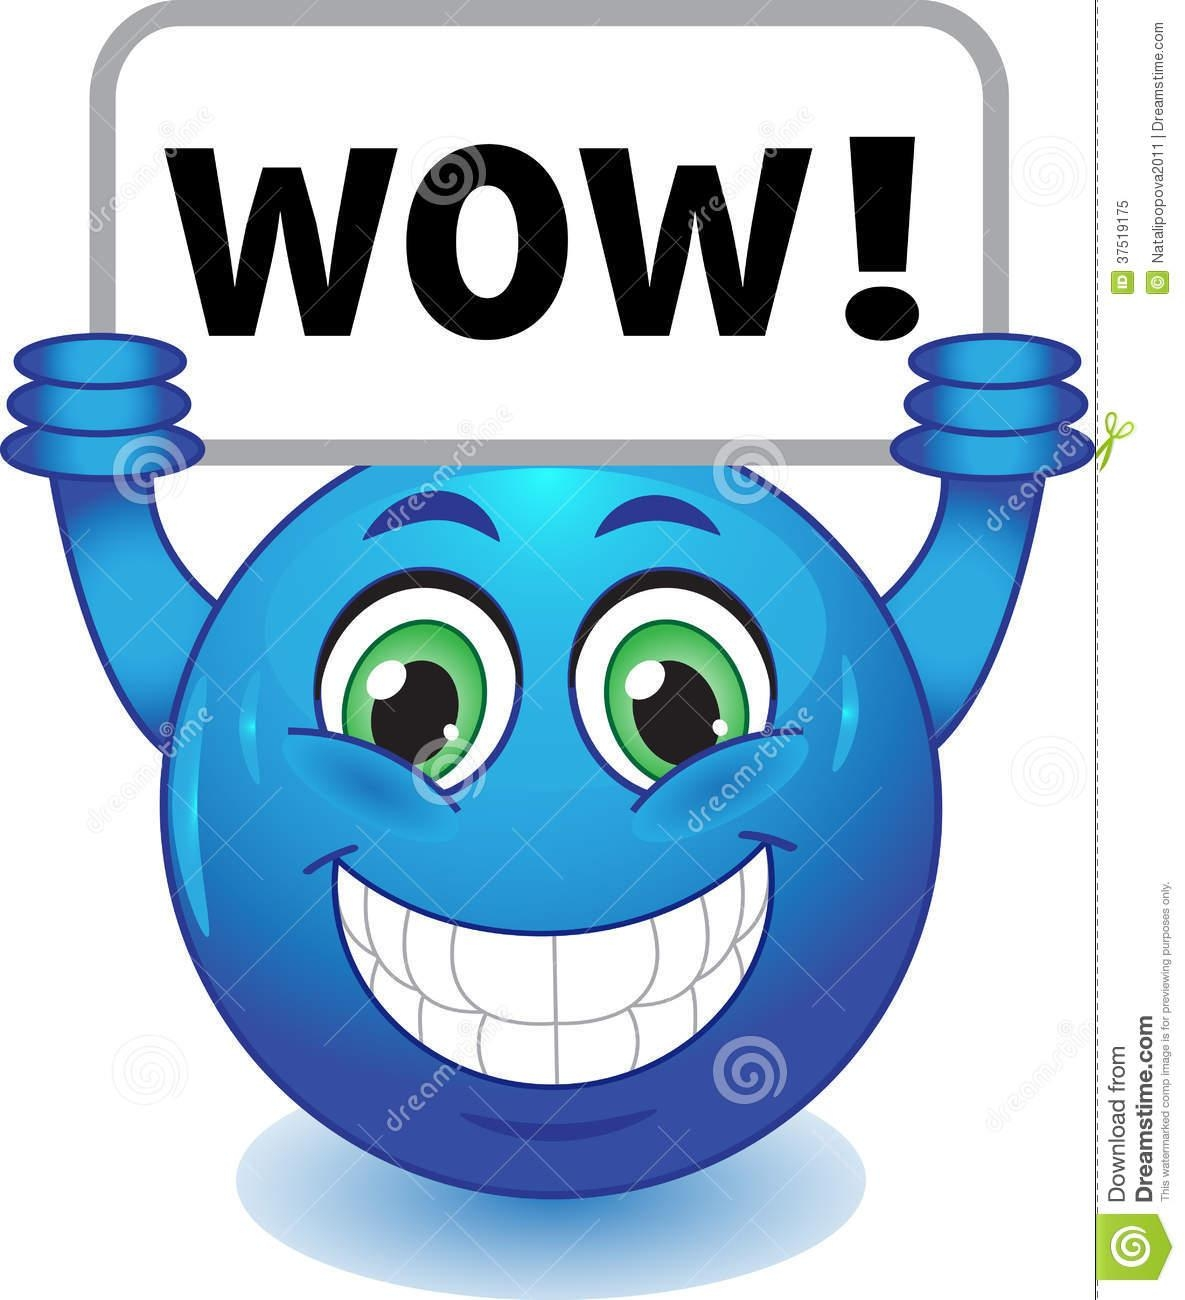 Wow clipart Awesome Wow Face Clip Art 12 » Clipart Station.